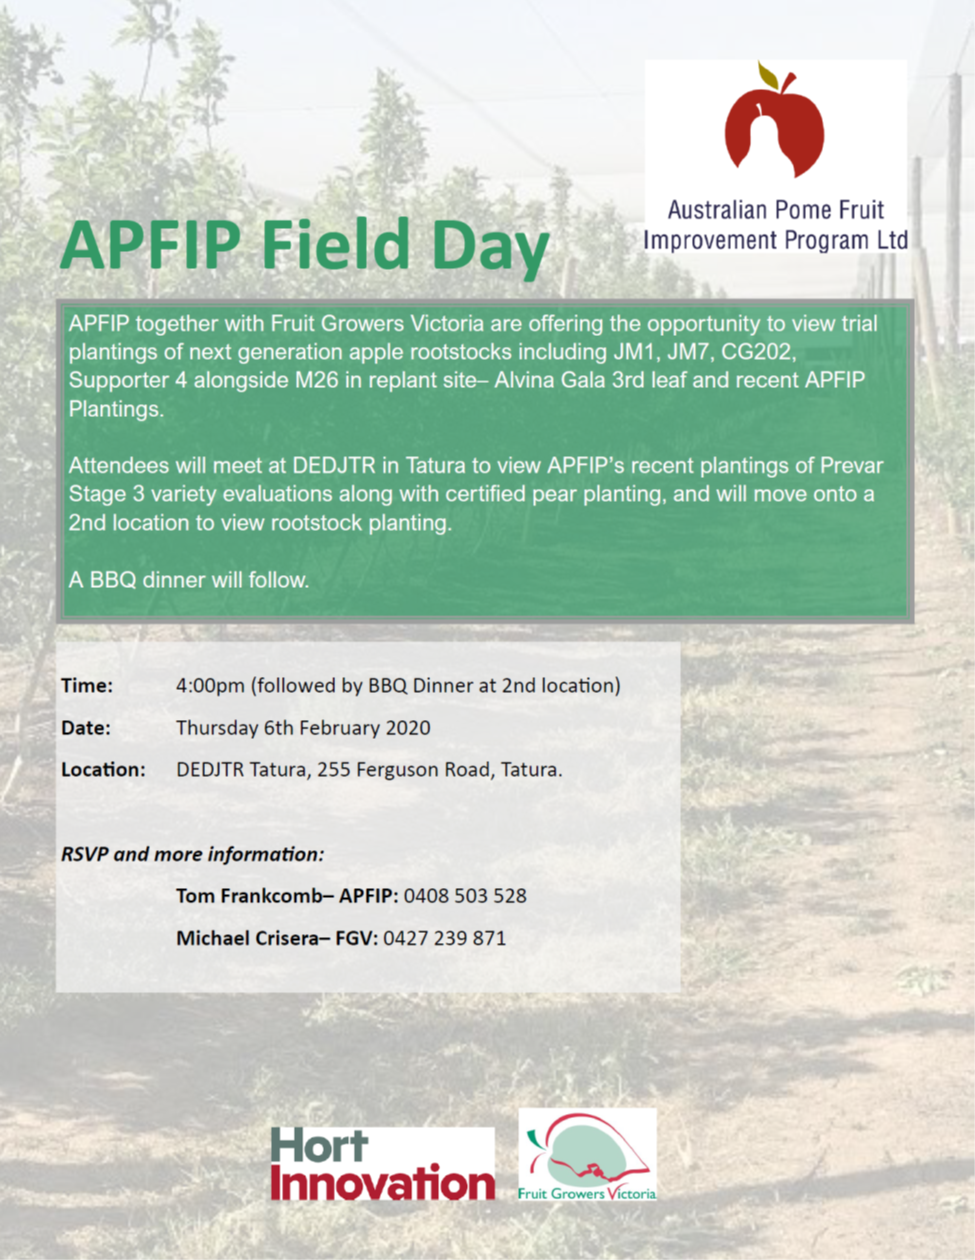 APFIP Field Day- Thursday 6th February 2020